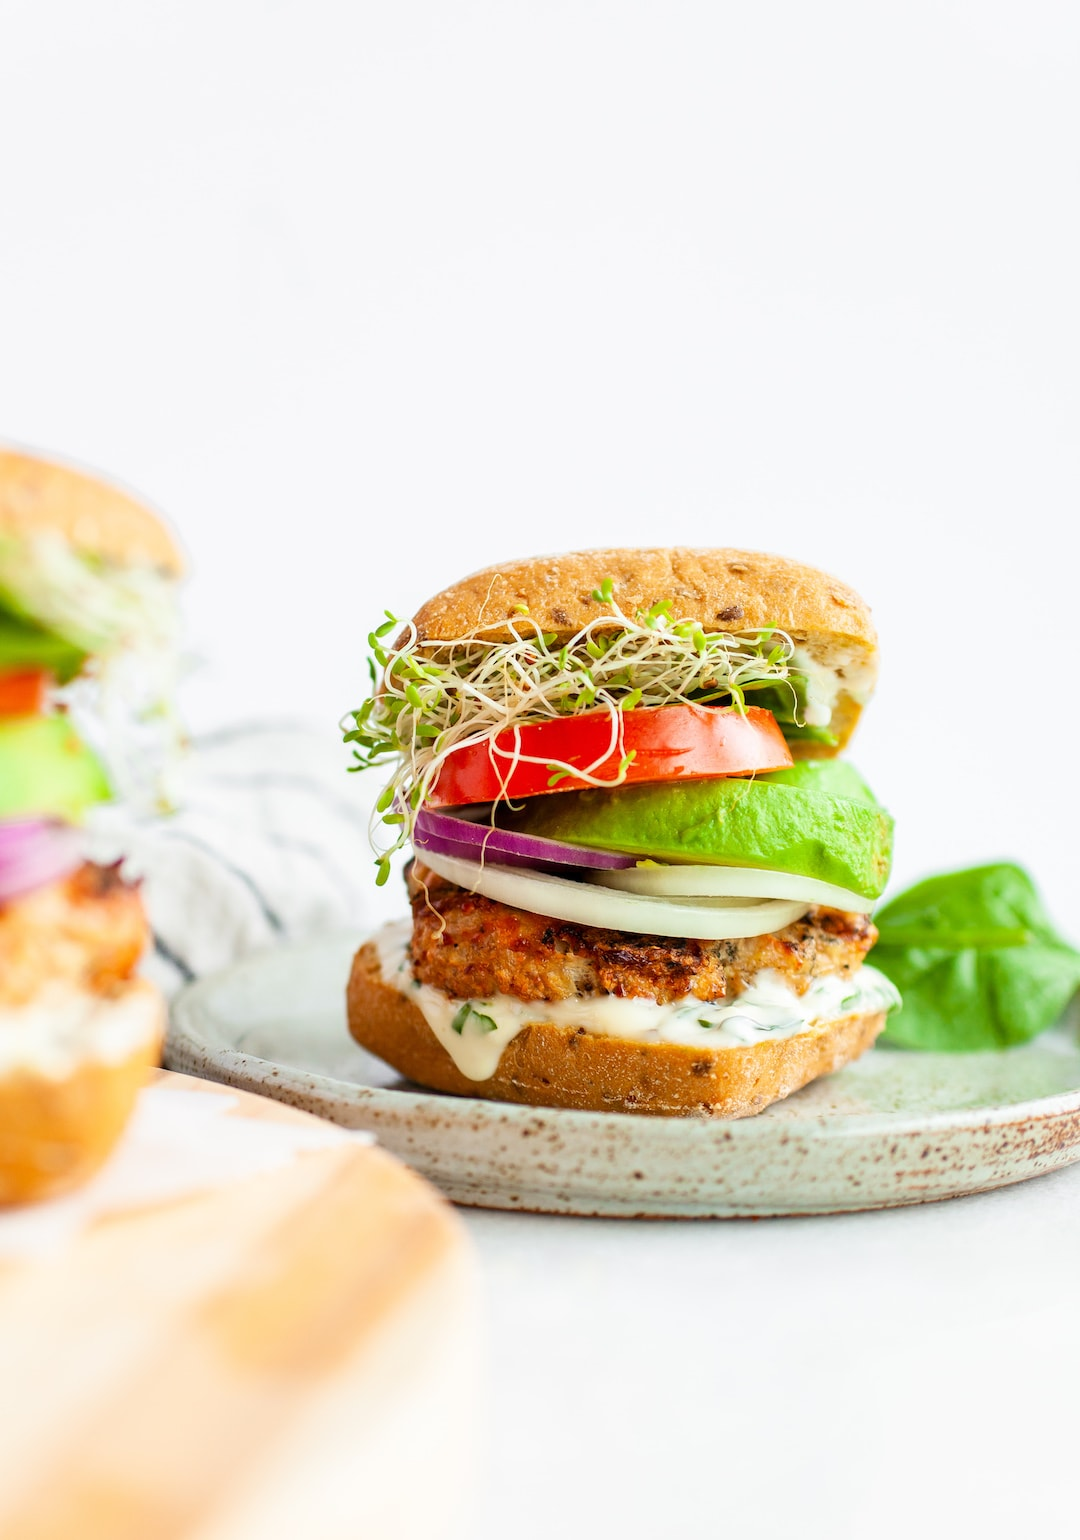 Gluten Free Dairy Free Best Healthy Turkey Burger Recipe with Avocado